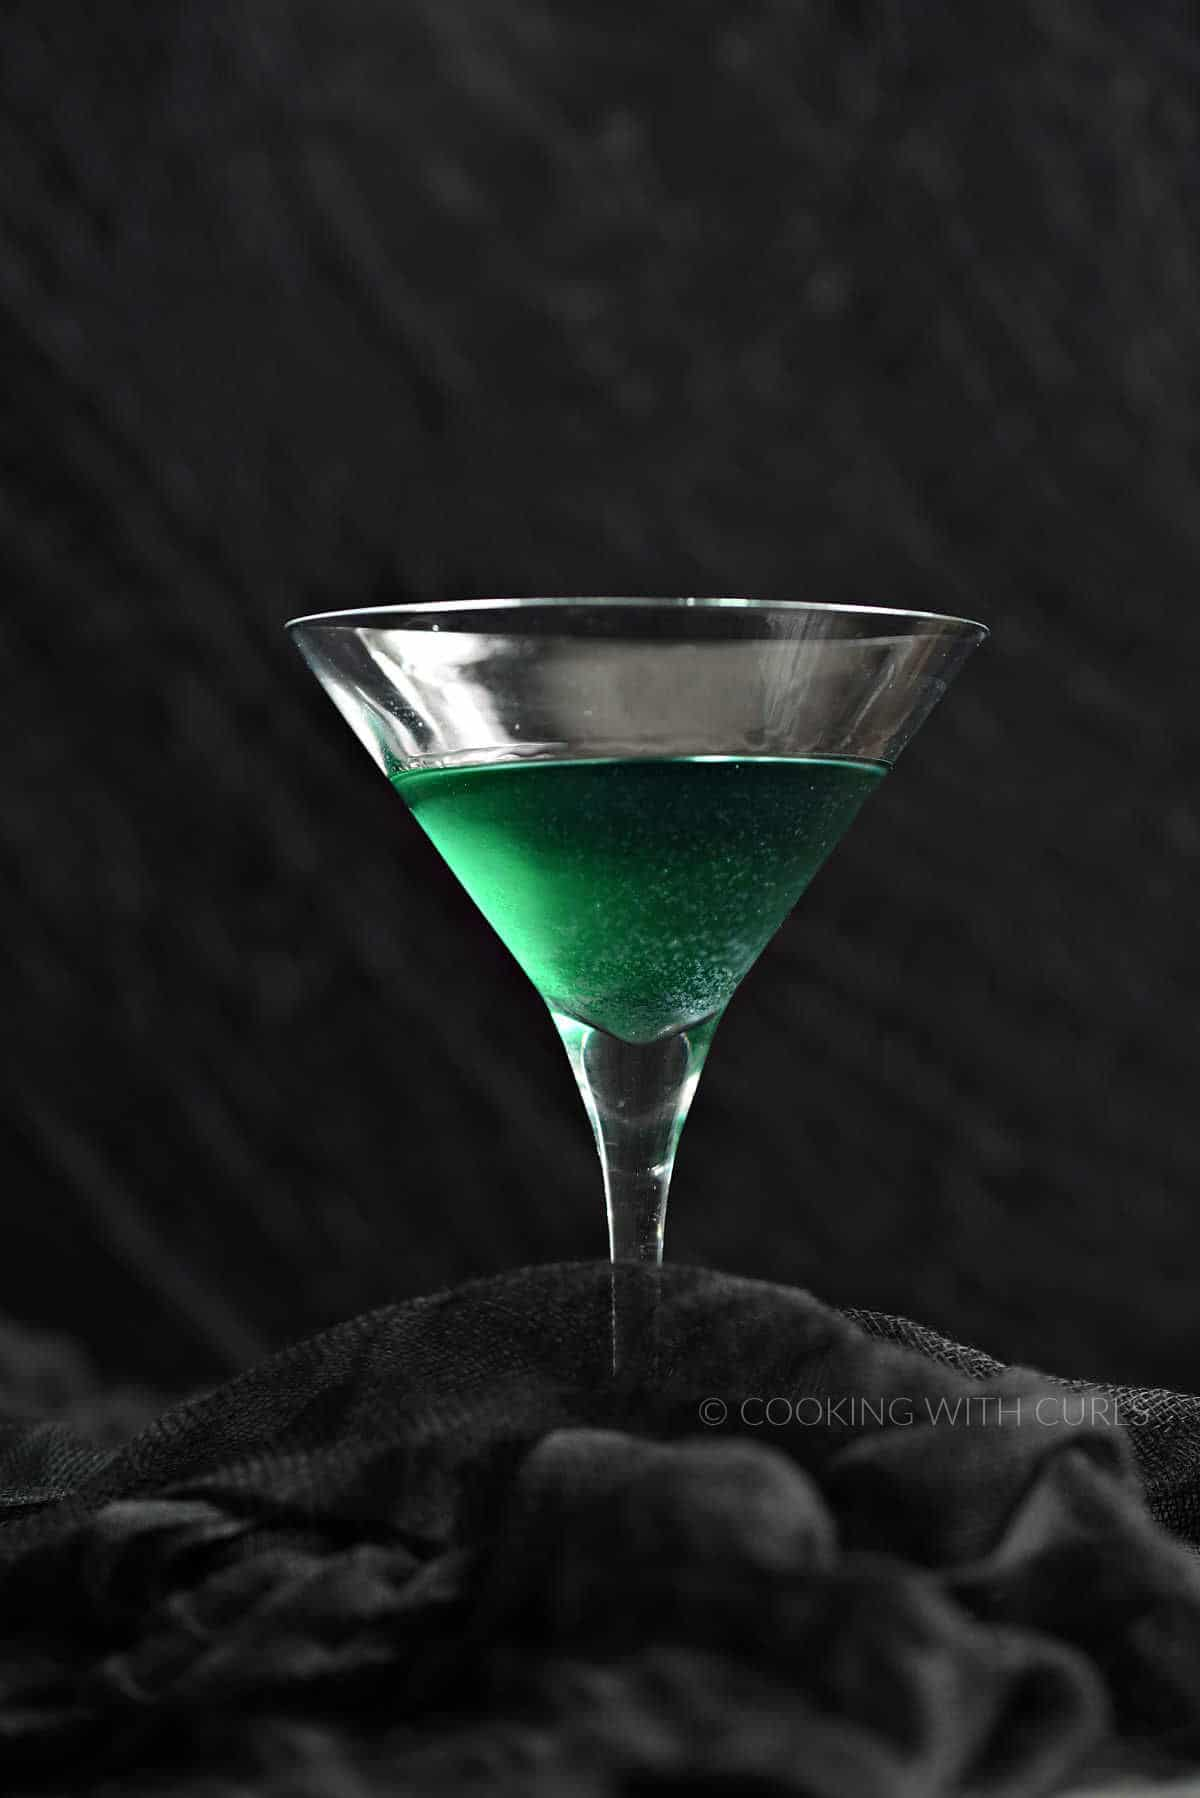 Glittering green cocktail in a martini glass with a black background.